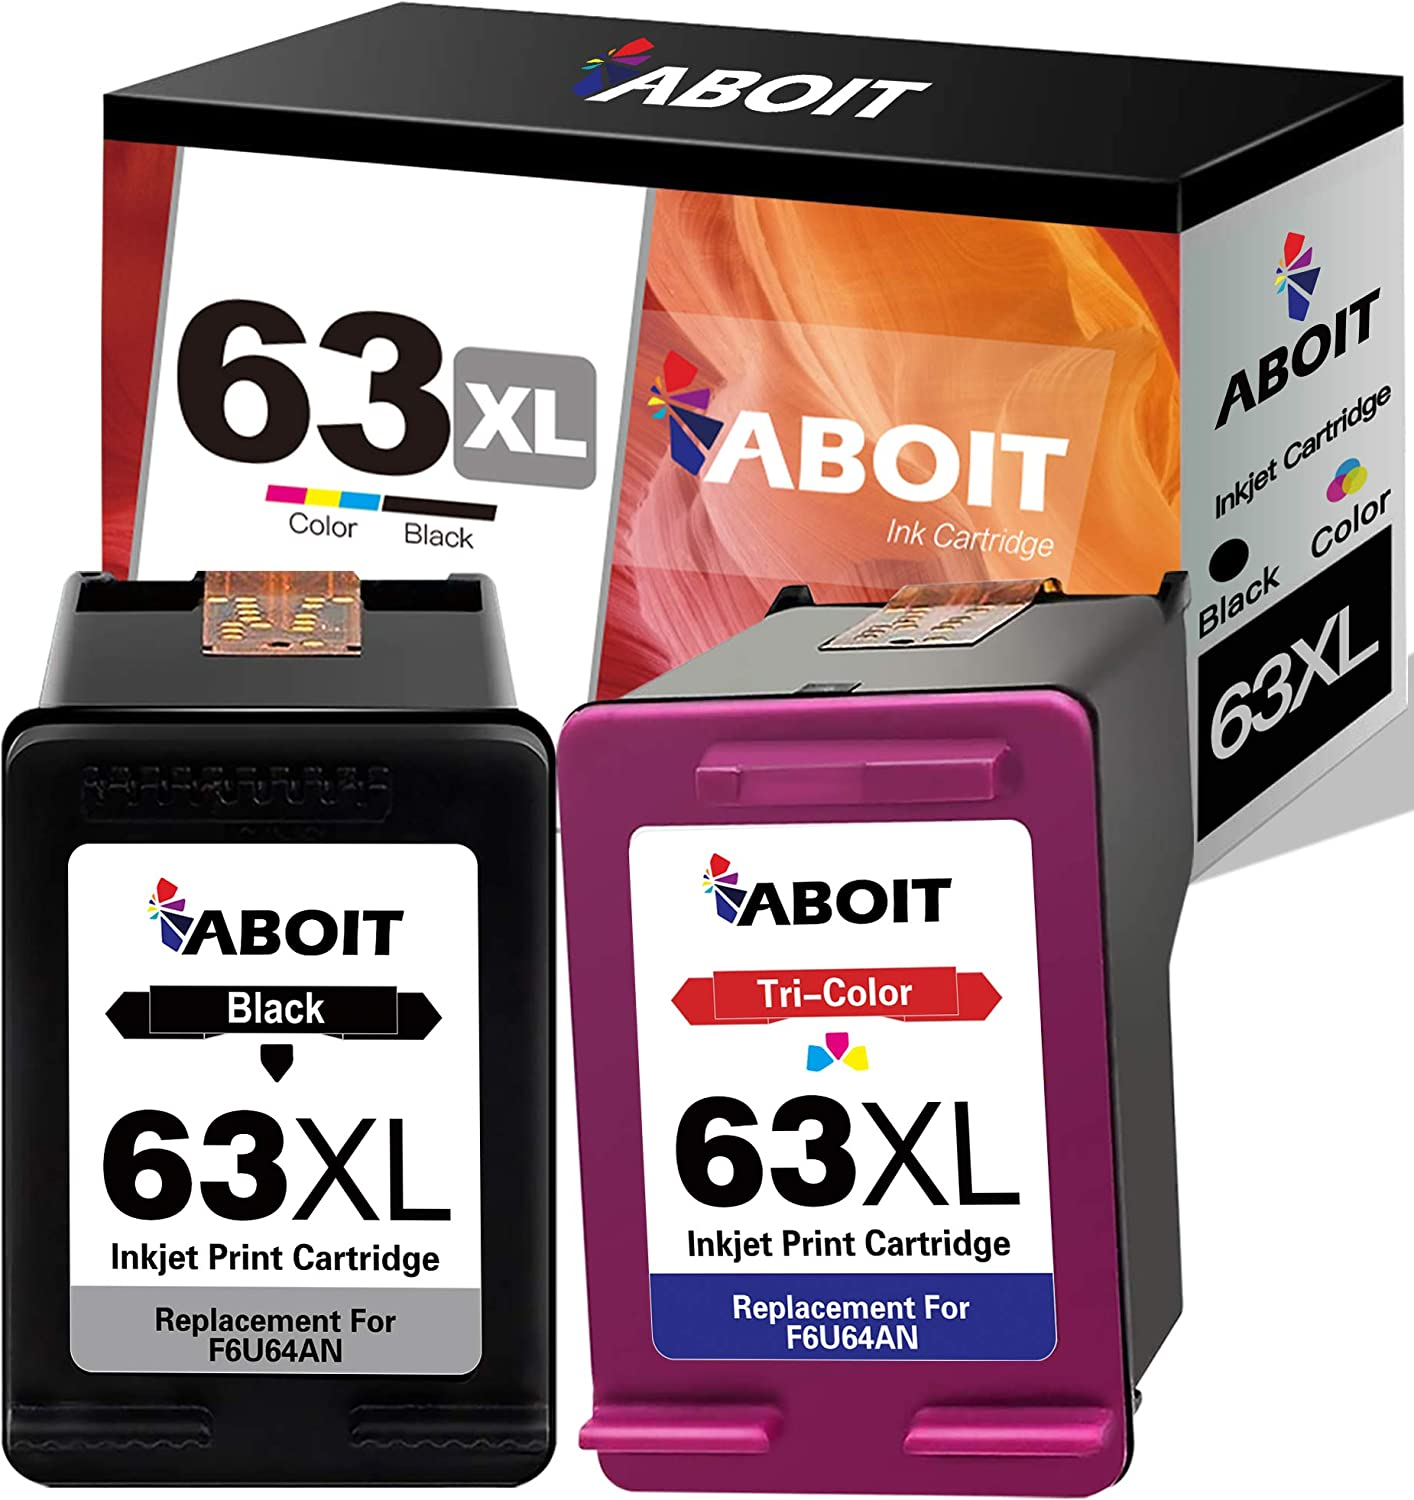 ABOIT Remaunfactured 63XL Ink Cartridge Replacement for HP 63 63 XL 63XL Ink to use with HP OfficeJet 3830 Envy 4520 4512 Officejet 4650 5255 Deskjet 1112 3634 3632 Printer (2 Pack)